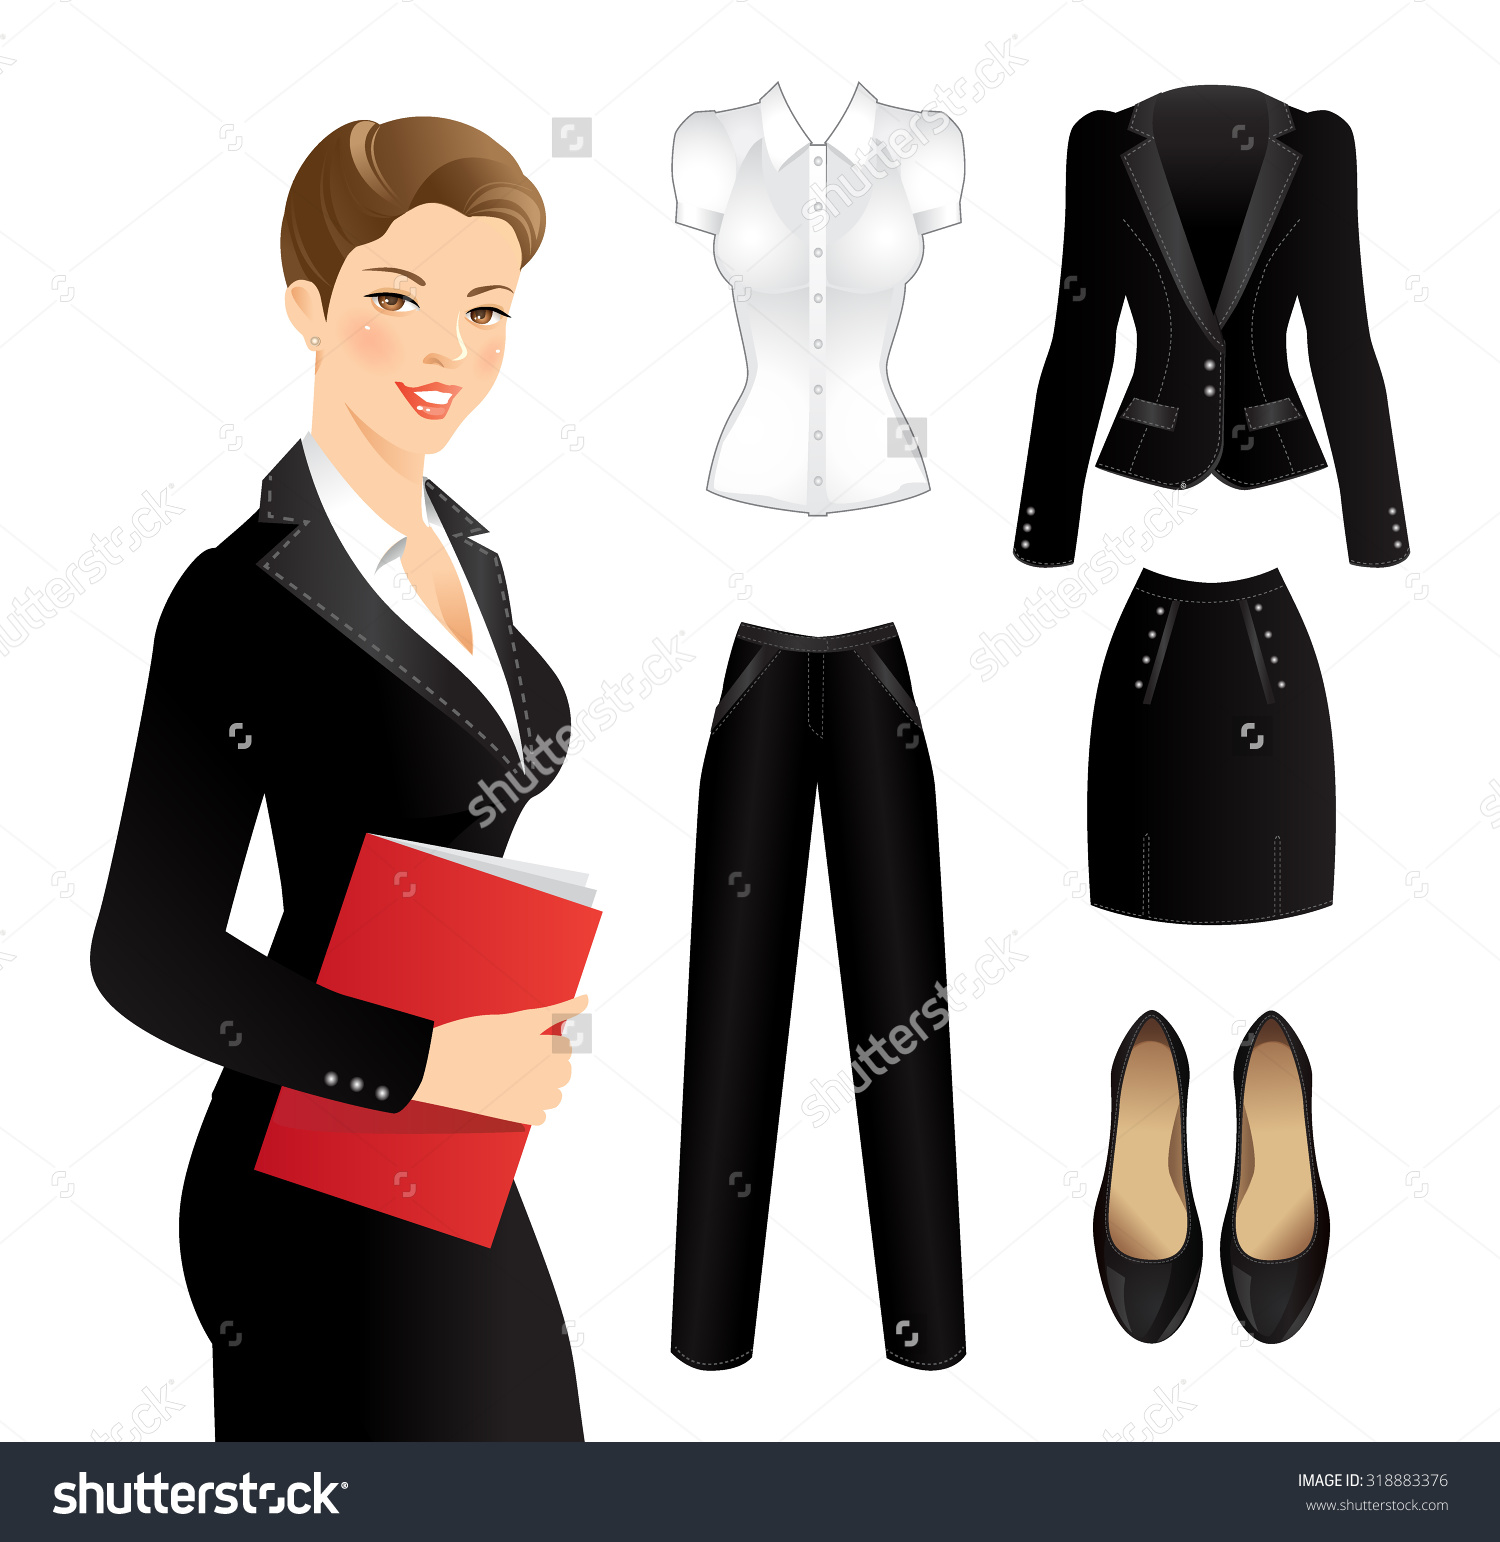 Similiar Business Clothes Clip Art Keywords.